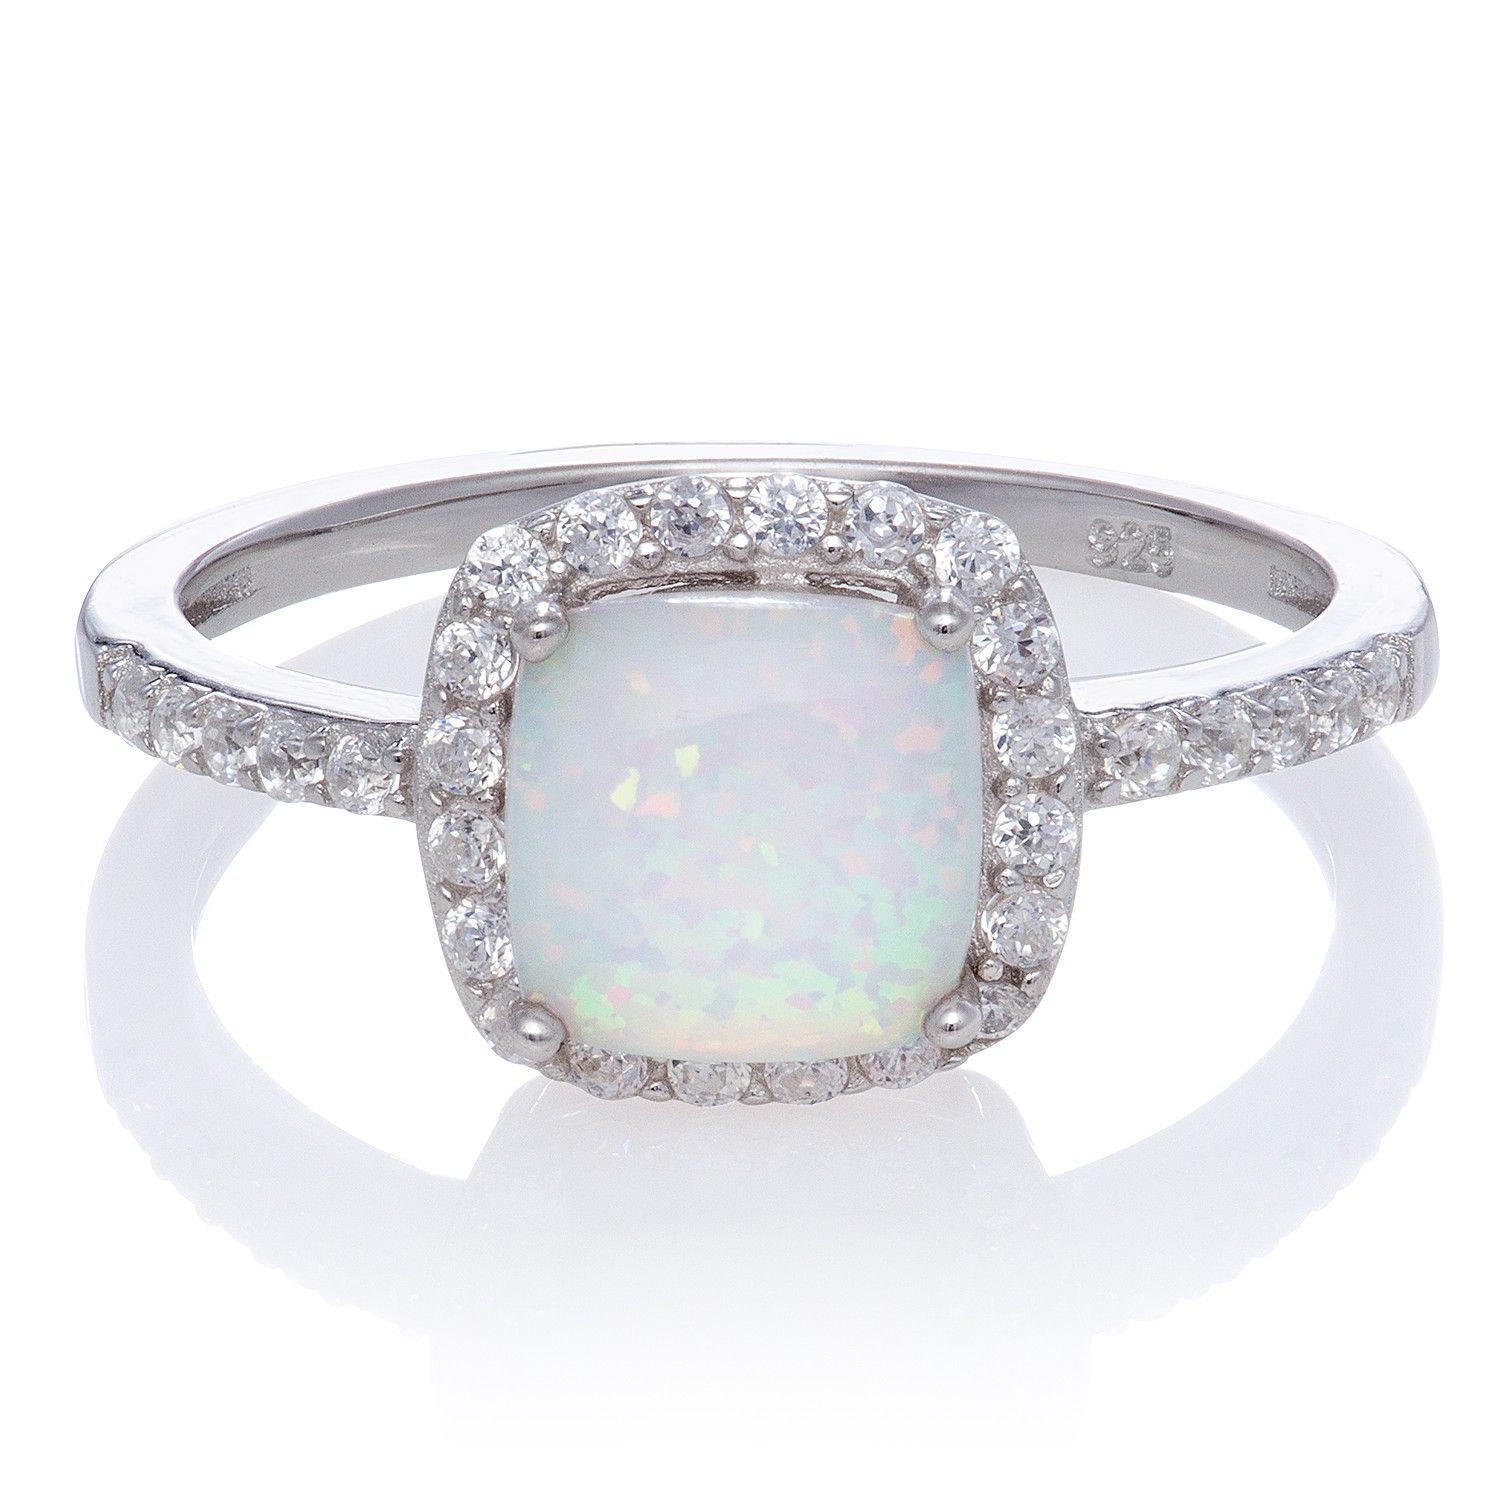 white sapphire wedding rings Cushion Cut Halo Opal and White Sapphire Ring in Sterling Silver mm